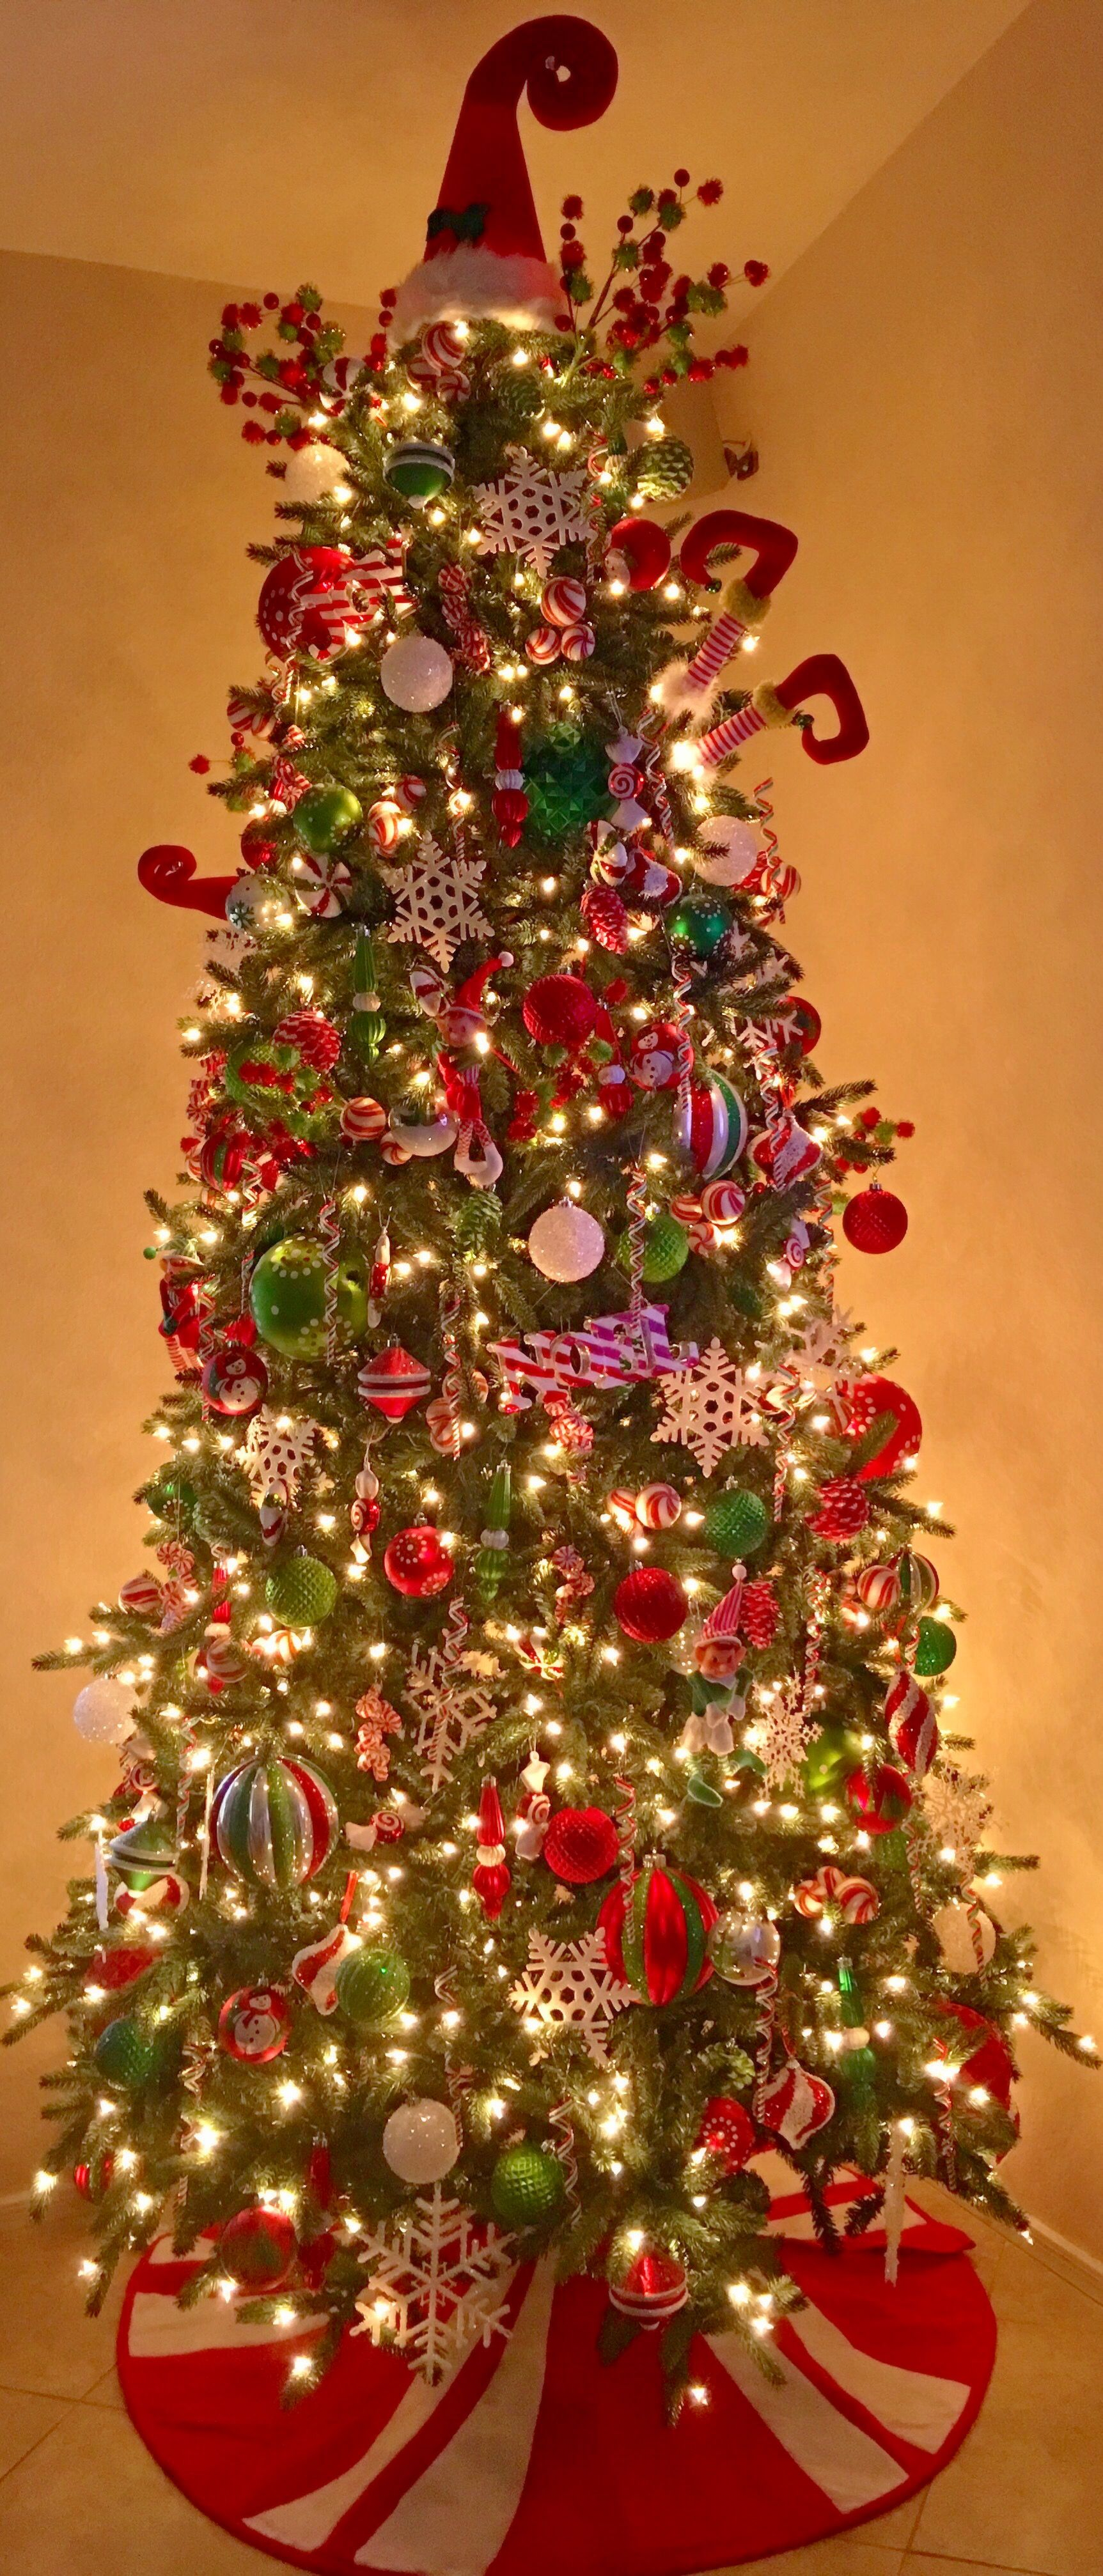 Christmas Tree 2016 Whimsical Tree Sweet Holiday Pier